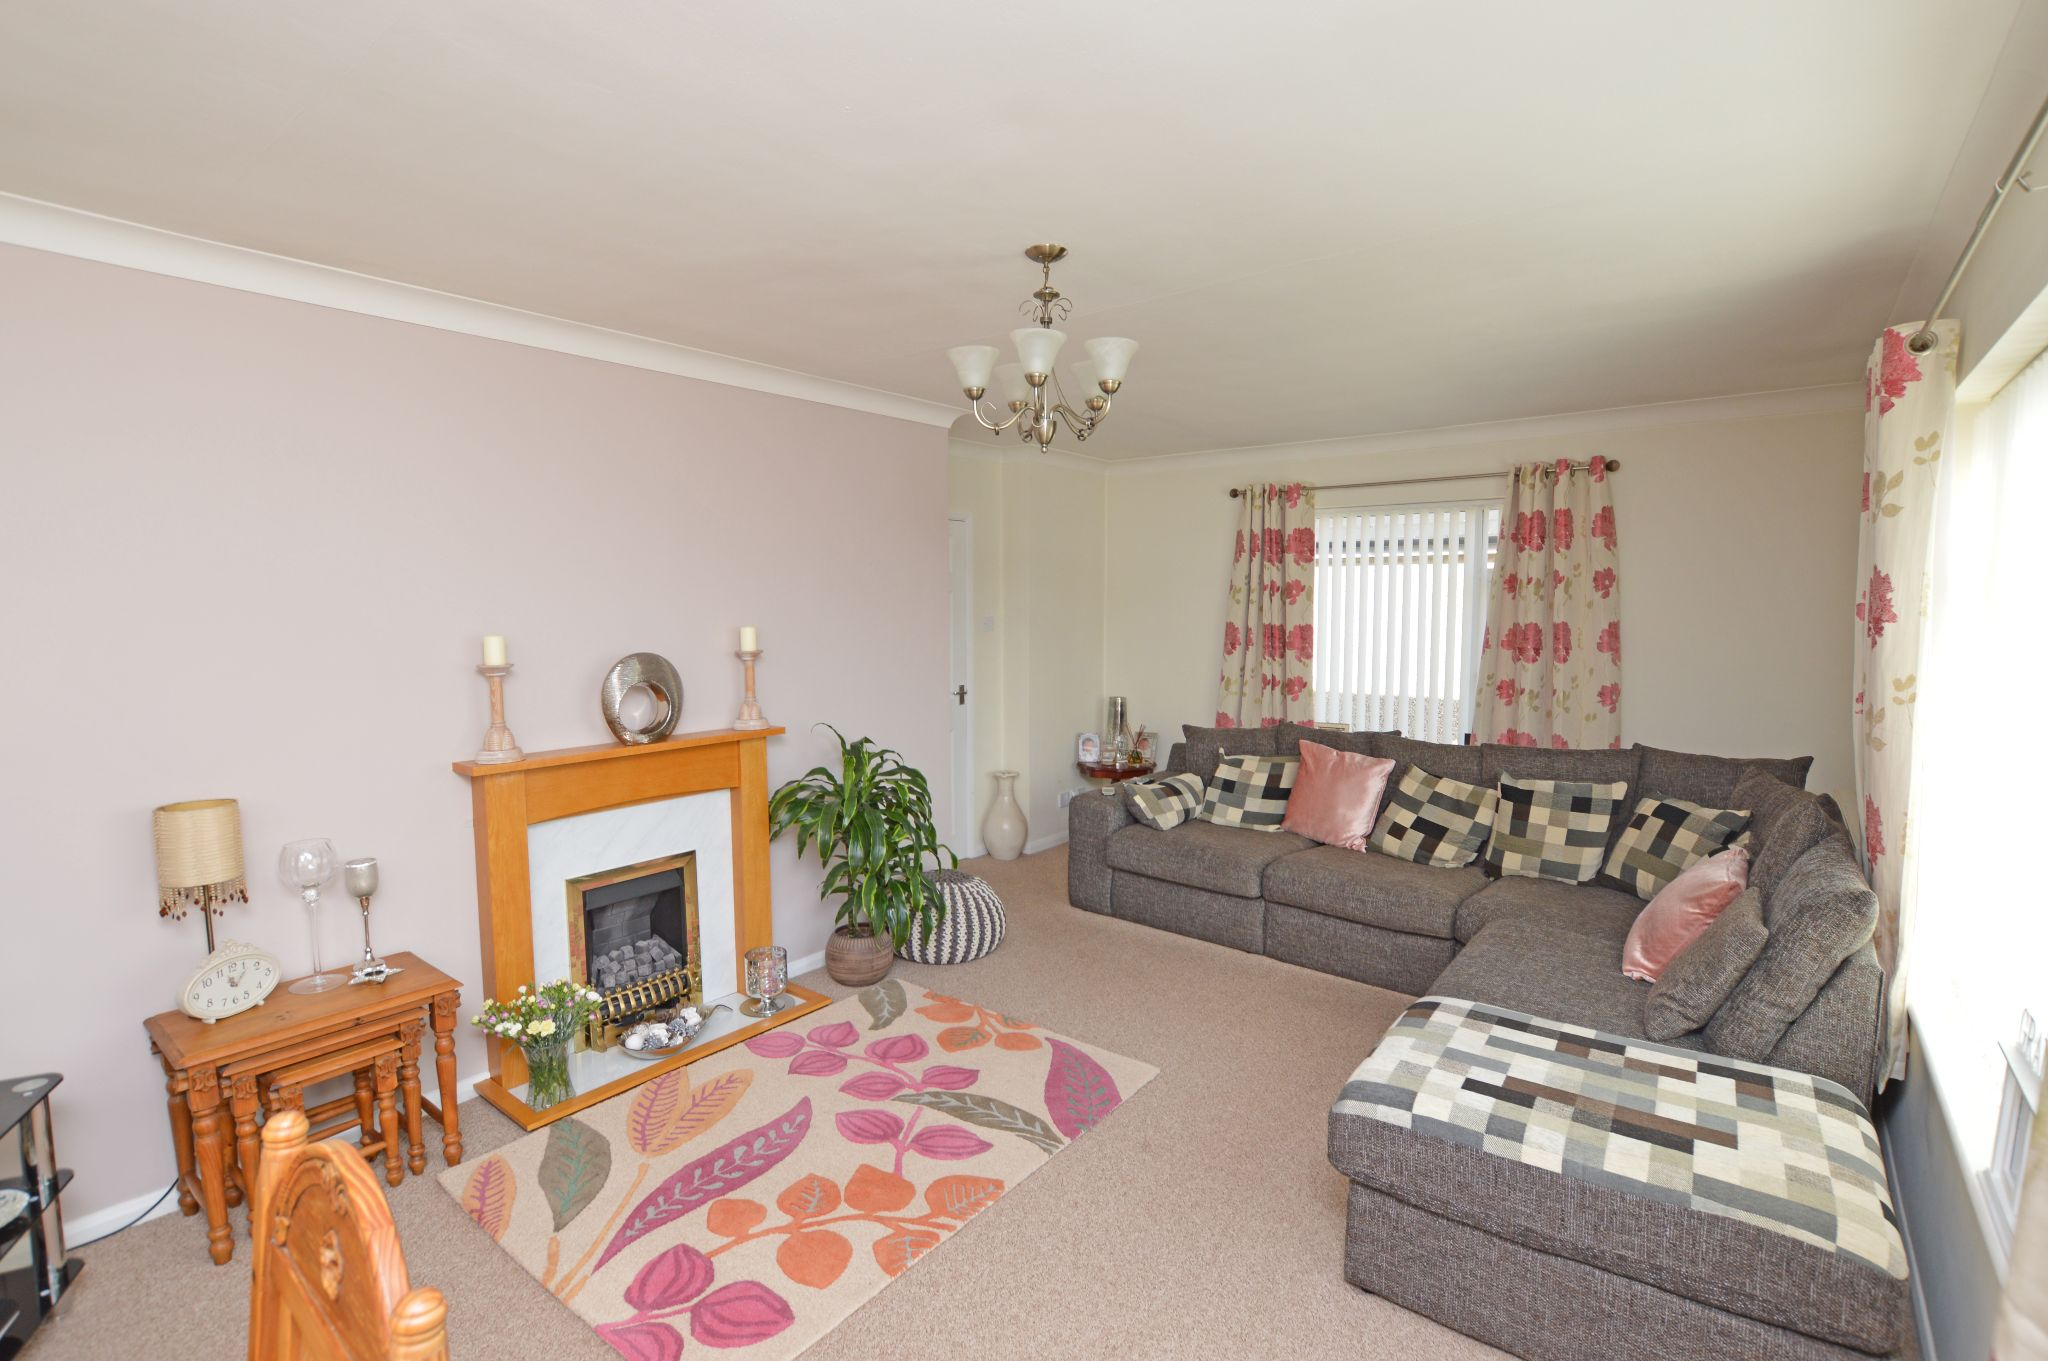 2 bedroom detached bungalow For Sale in Abergele - Lounge View 3